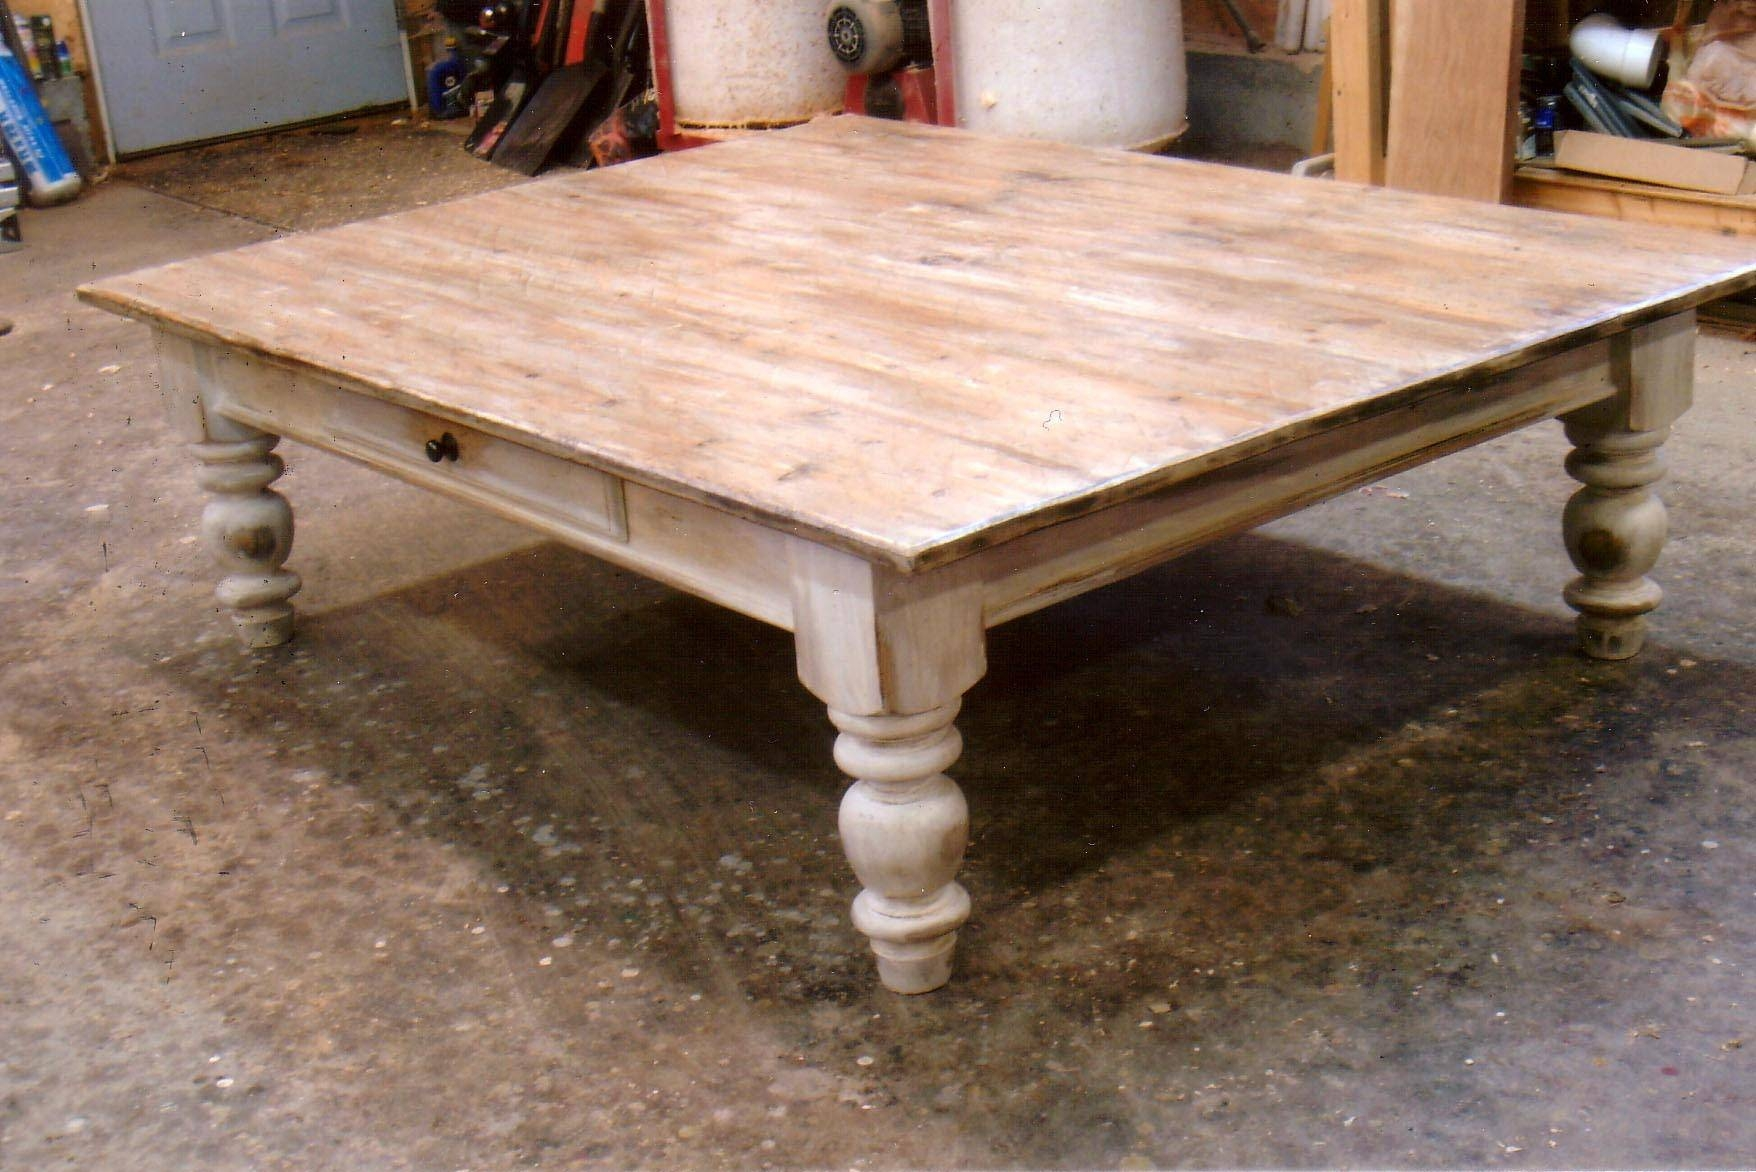 Antique Wood Coffee Table | Coffee Table Design Ideas for Low Square Wooden Coffee Tables (Image 1 of 30)